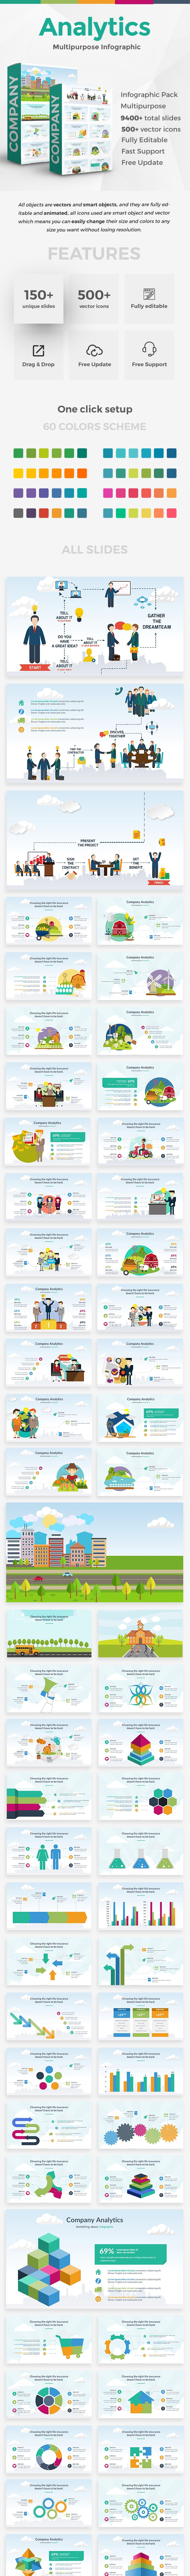 Company Analytics Infographic Powerpoint Template - Business PowerPoint Templates